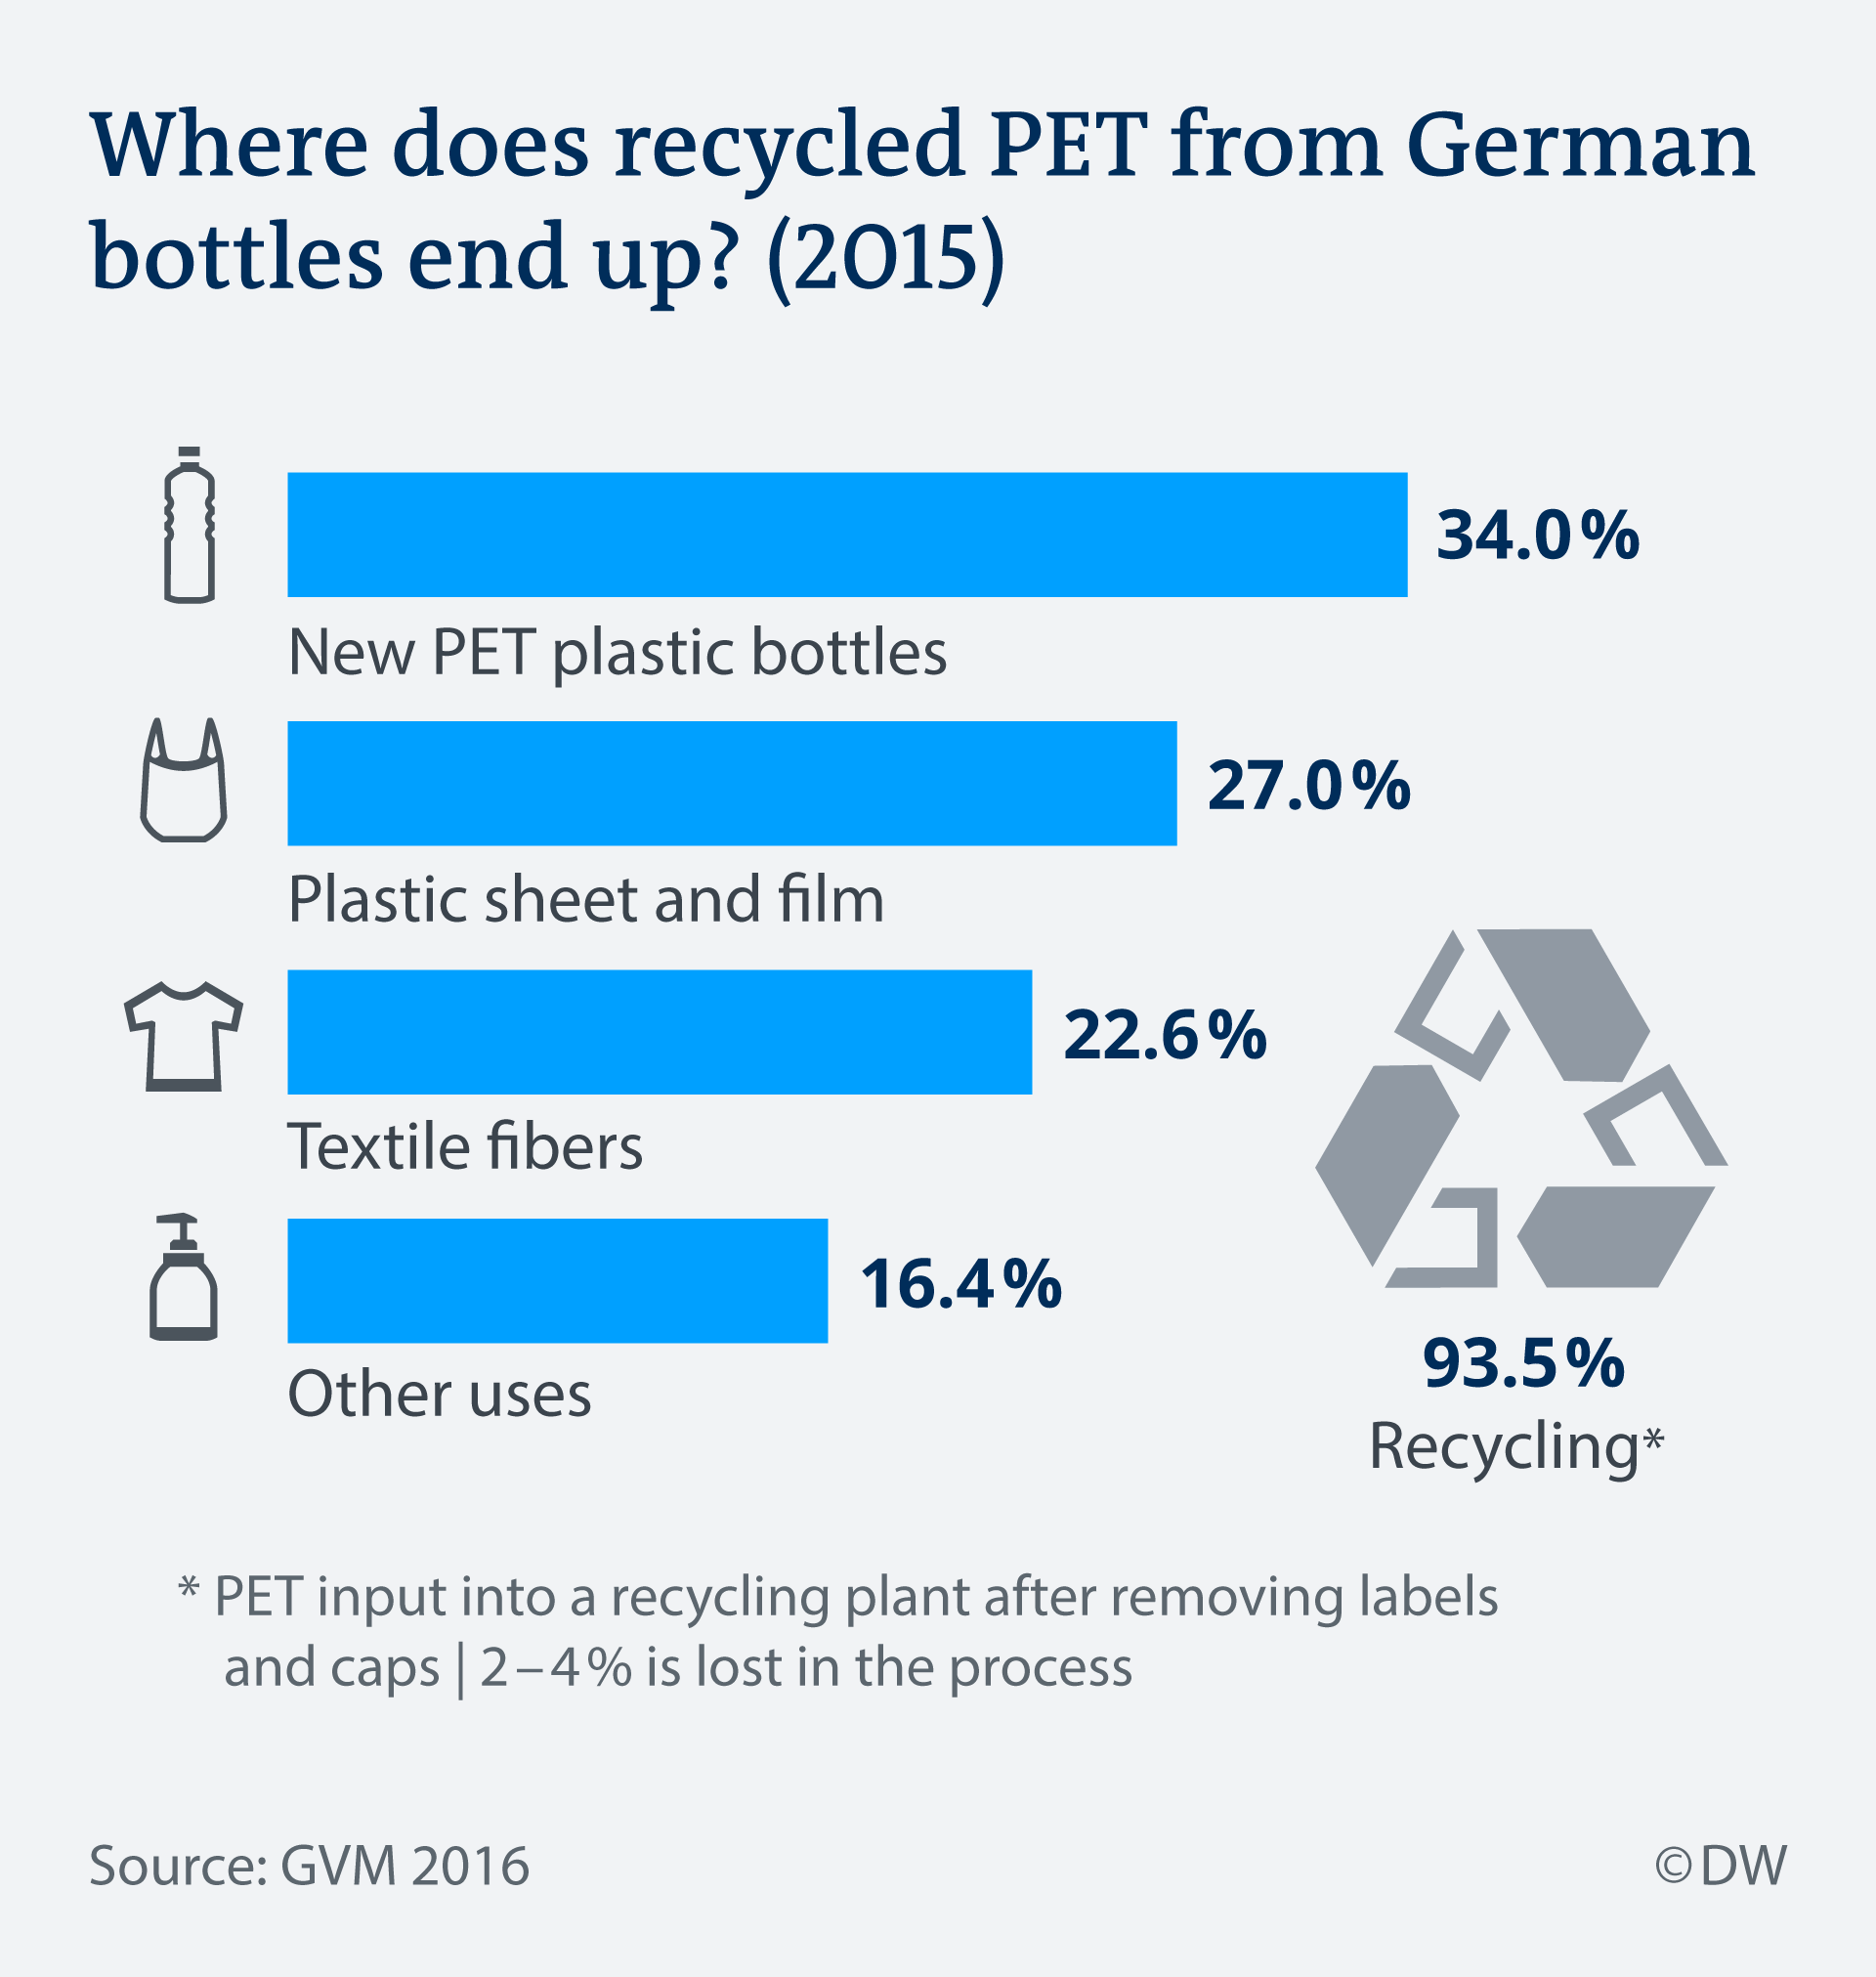 Infographic showing where recycled PET from German bottles ends up